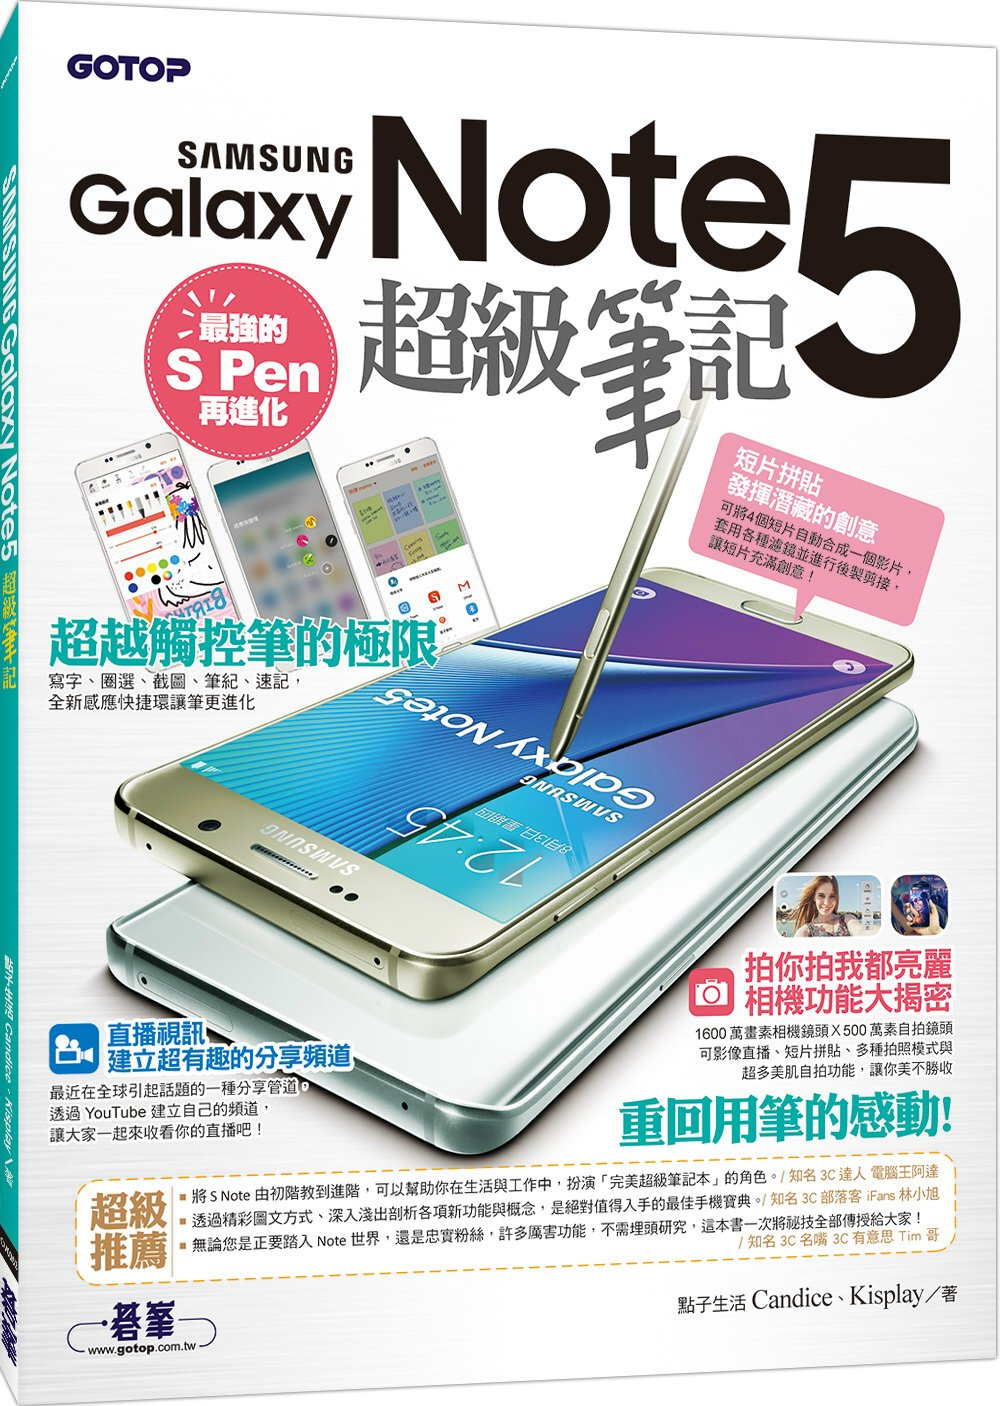 Samsung GALAXY Note 5超級筆記:最強的S~Pen再進化